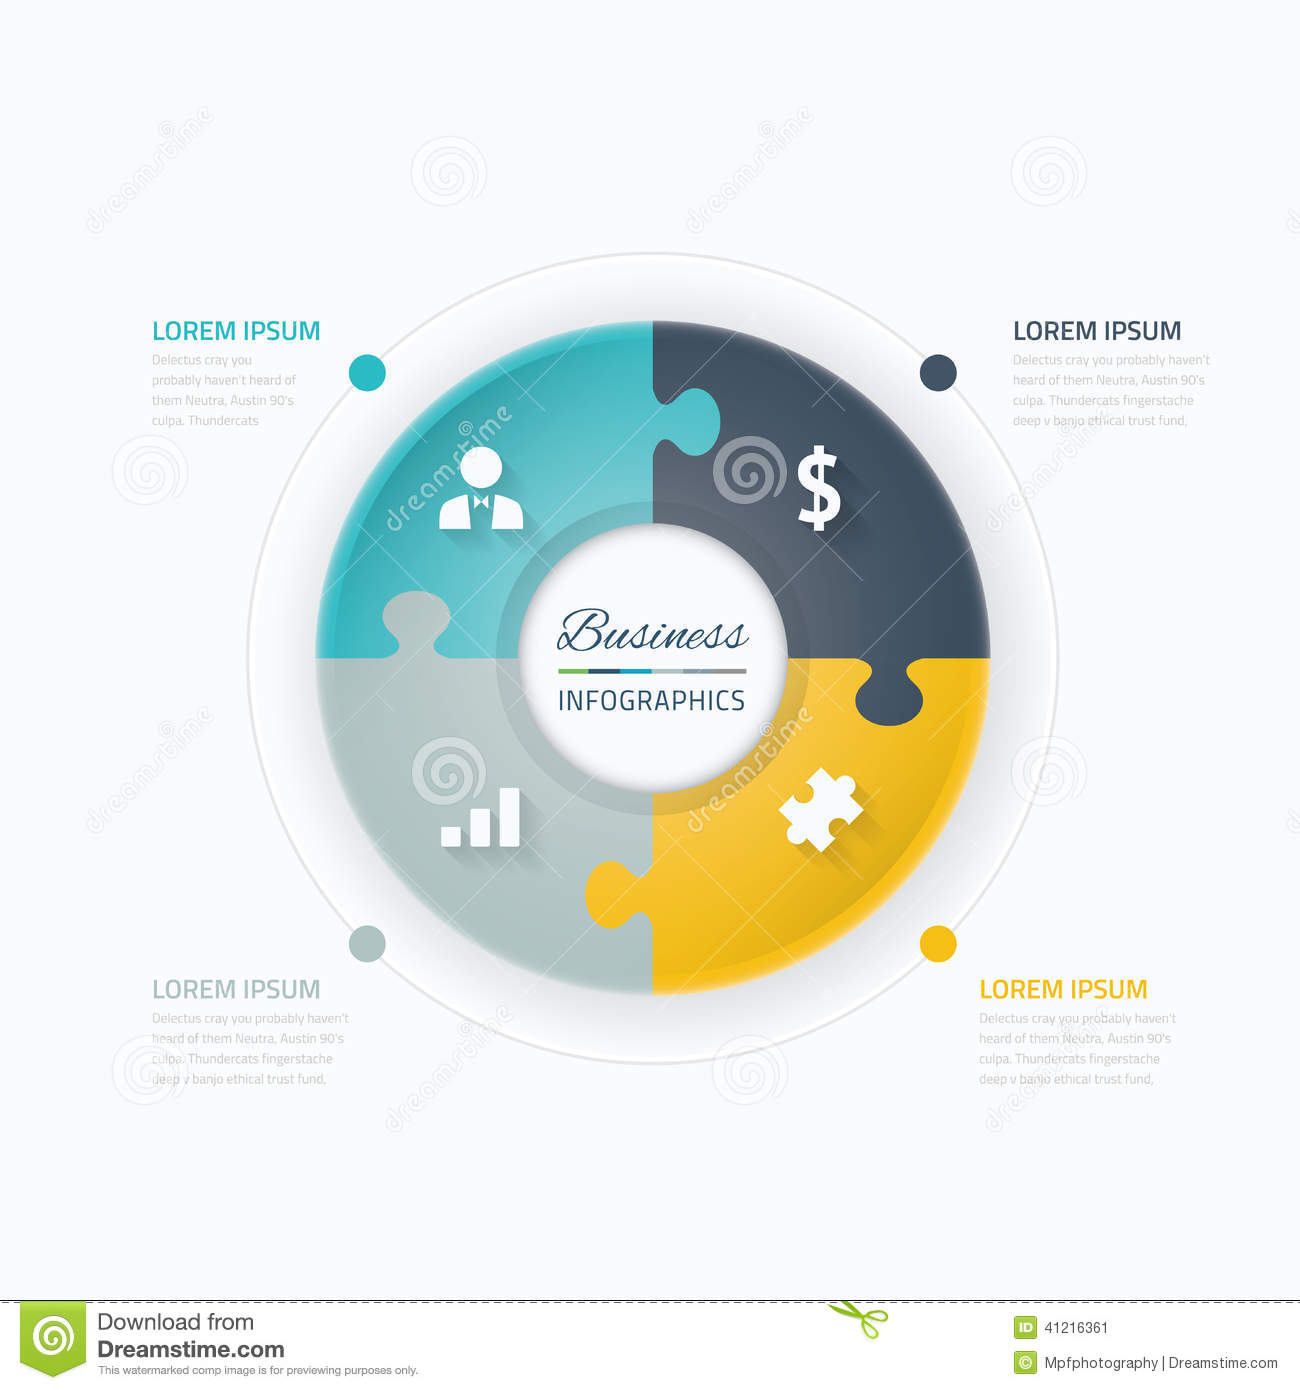 Business infographic elements circle with puzzle piece concept circle with puzzle piece concept and icons ccuart Choice Image